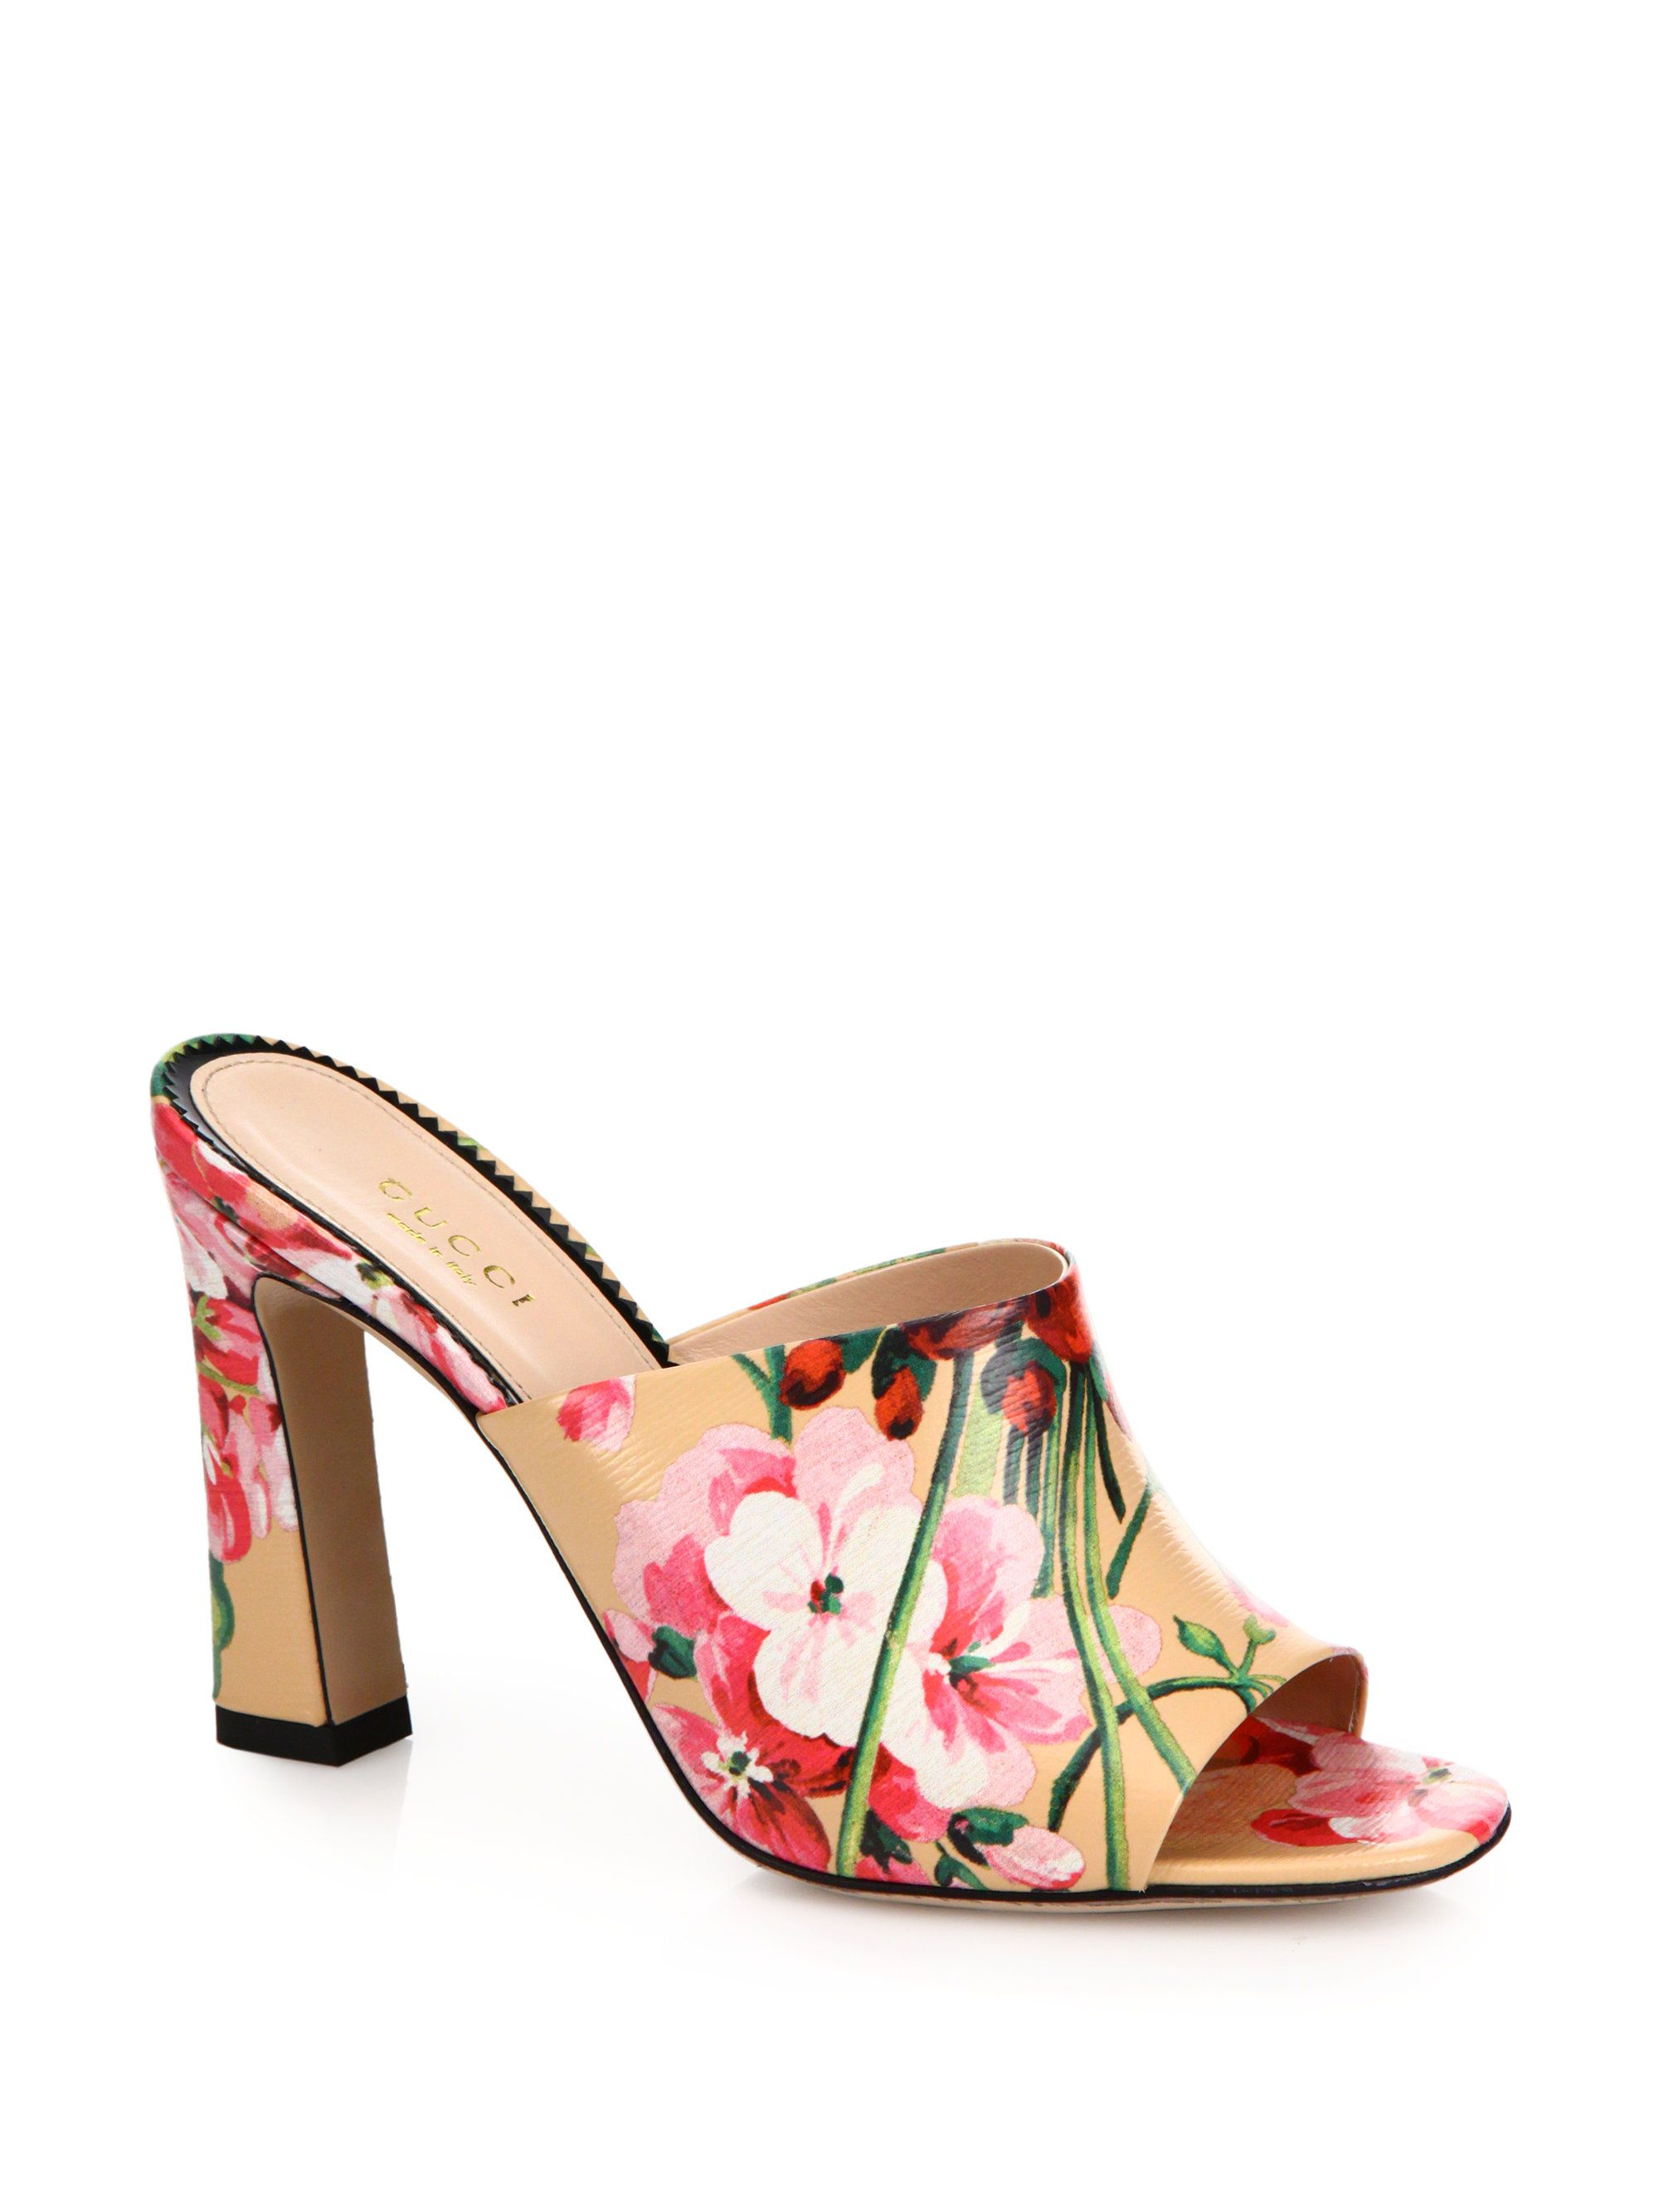 Gucci Floral-printed leather pumps 9JinebSt